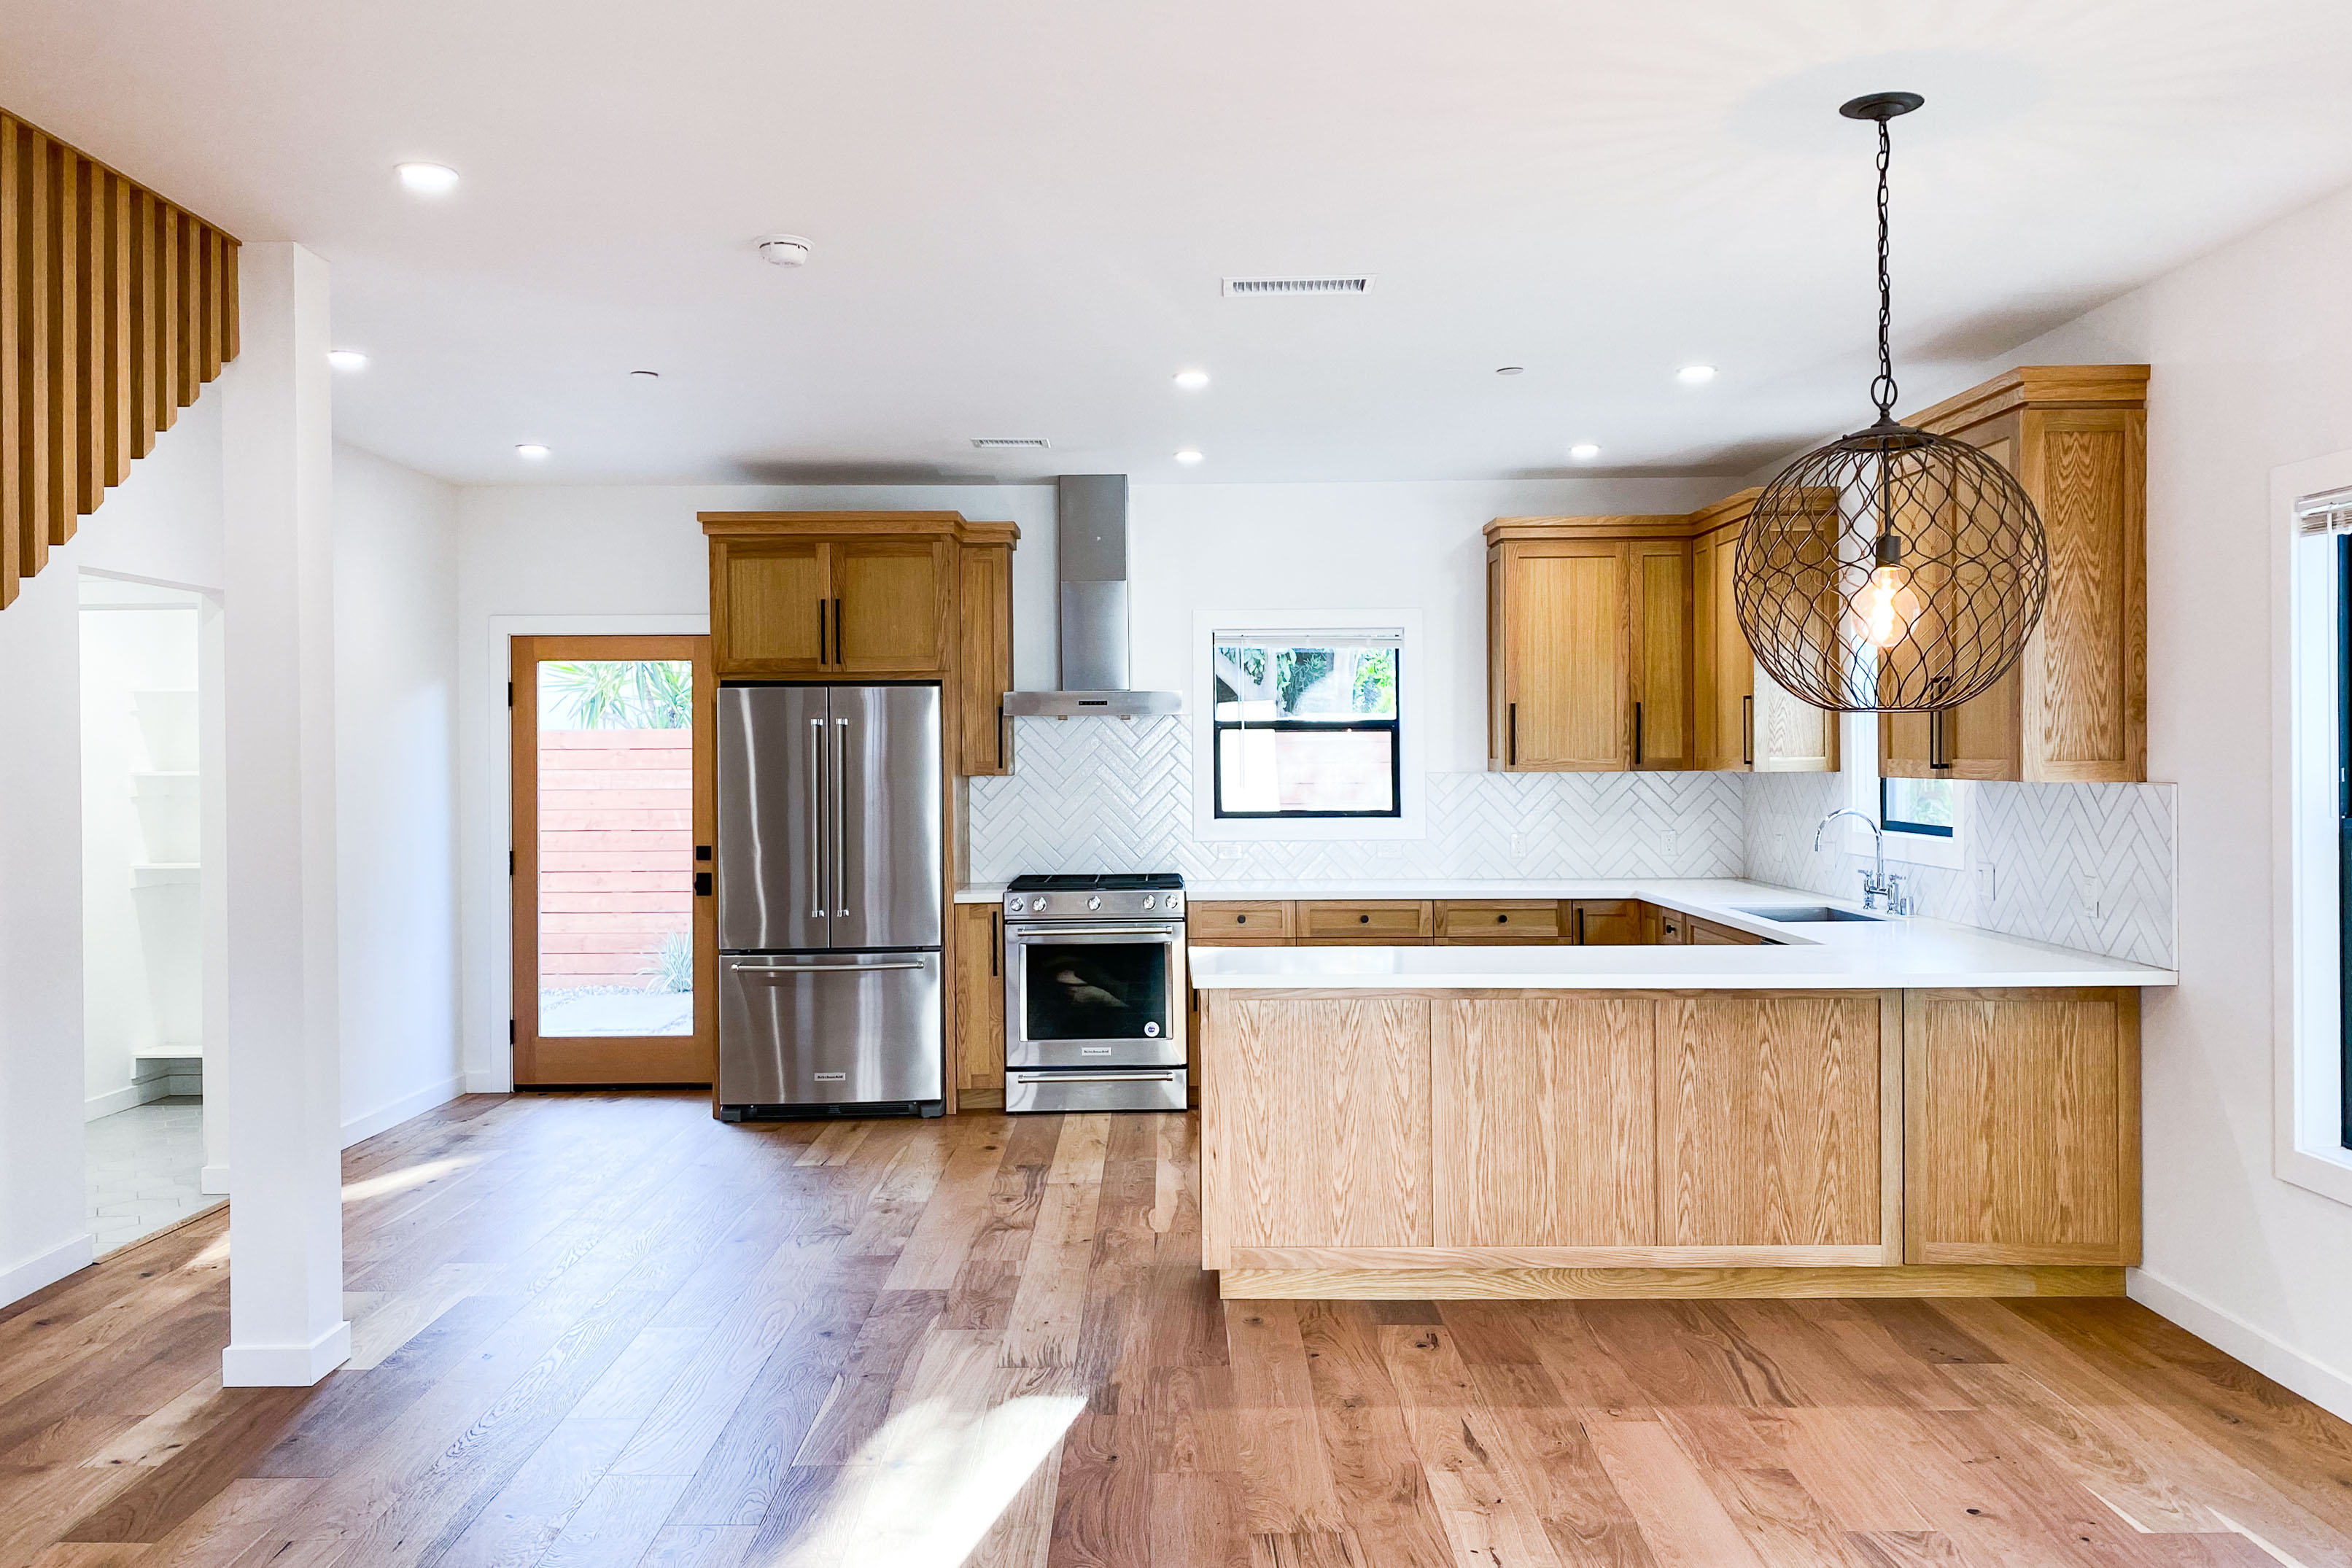 Entirely Brand New Build Top-to-Bottom | Private Back Yard  | Minutes from Everything in Frogtown!